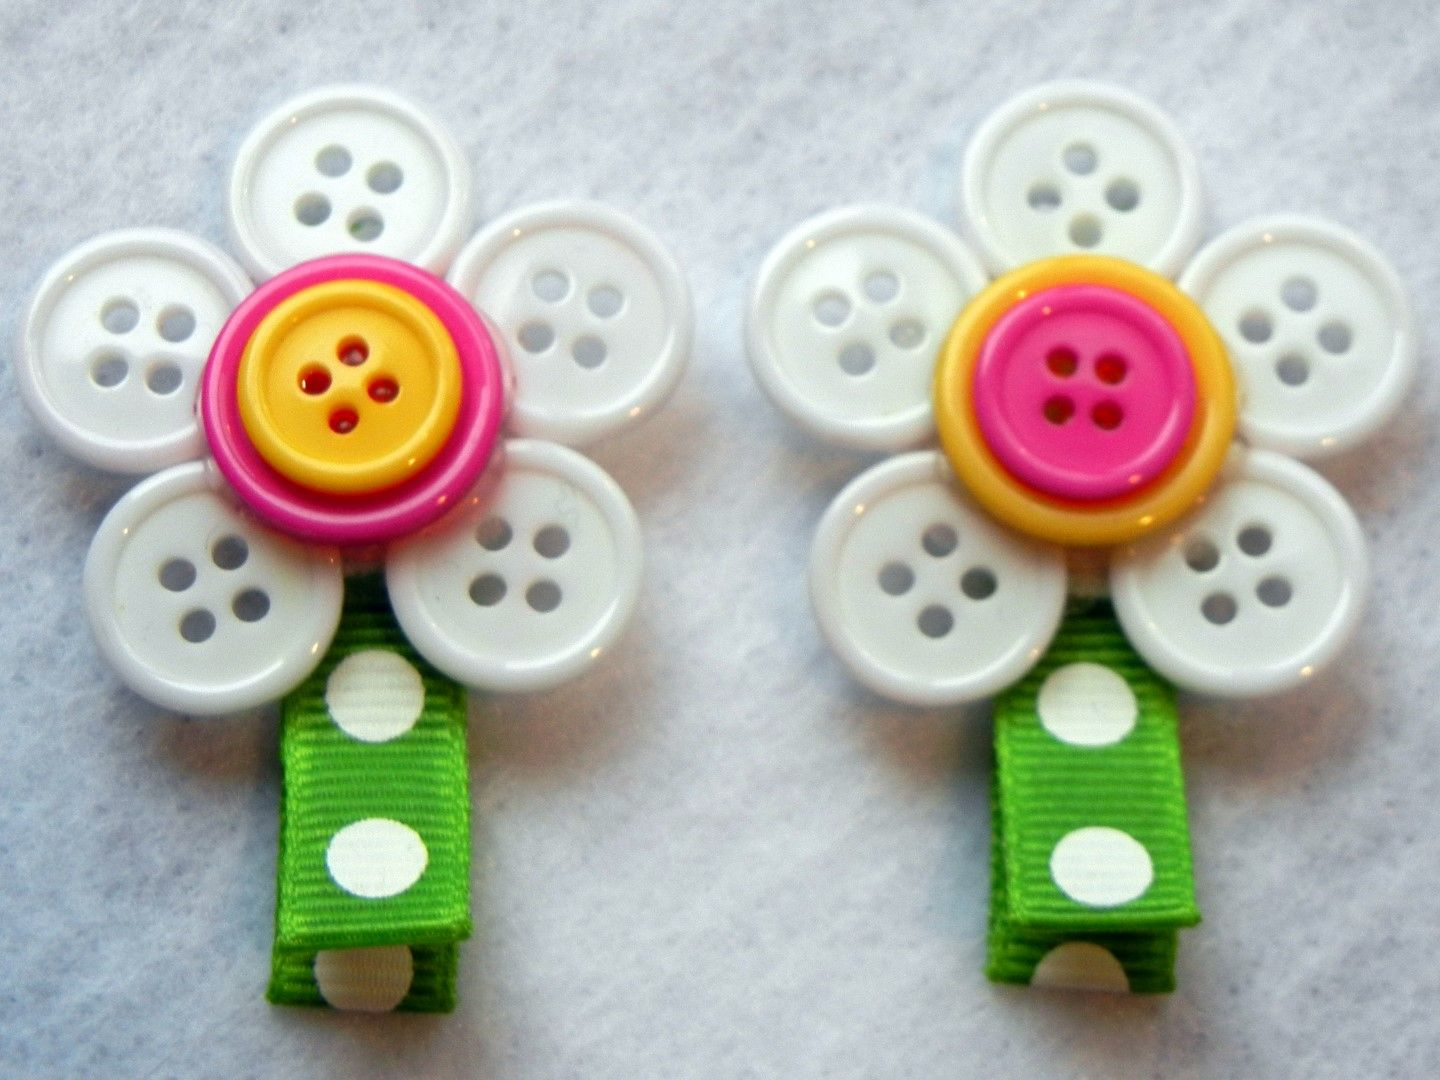 Hair bow button accessories - Button daisies use on hair accessories or greeting cards need a whole bouquet stat